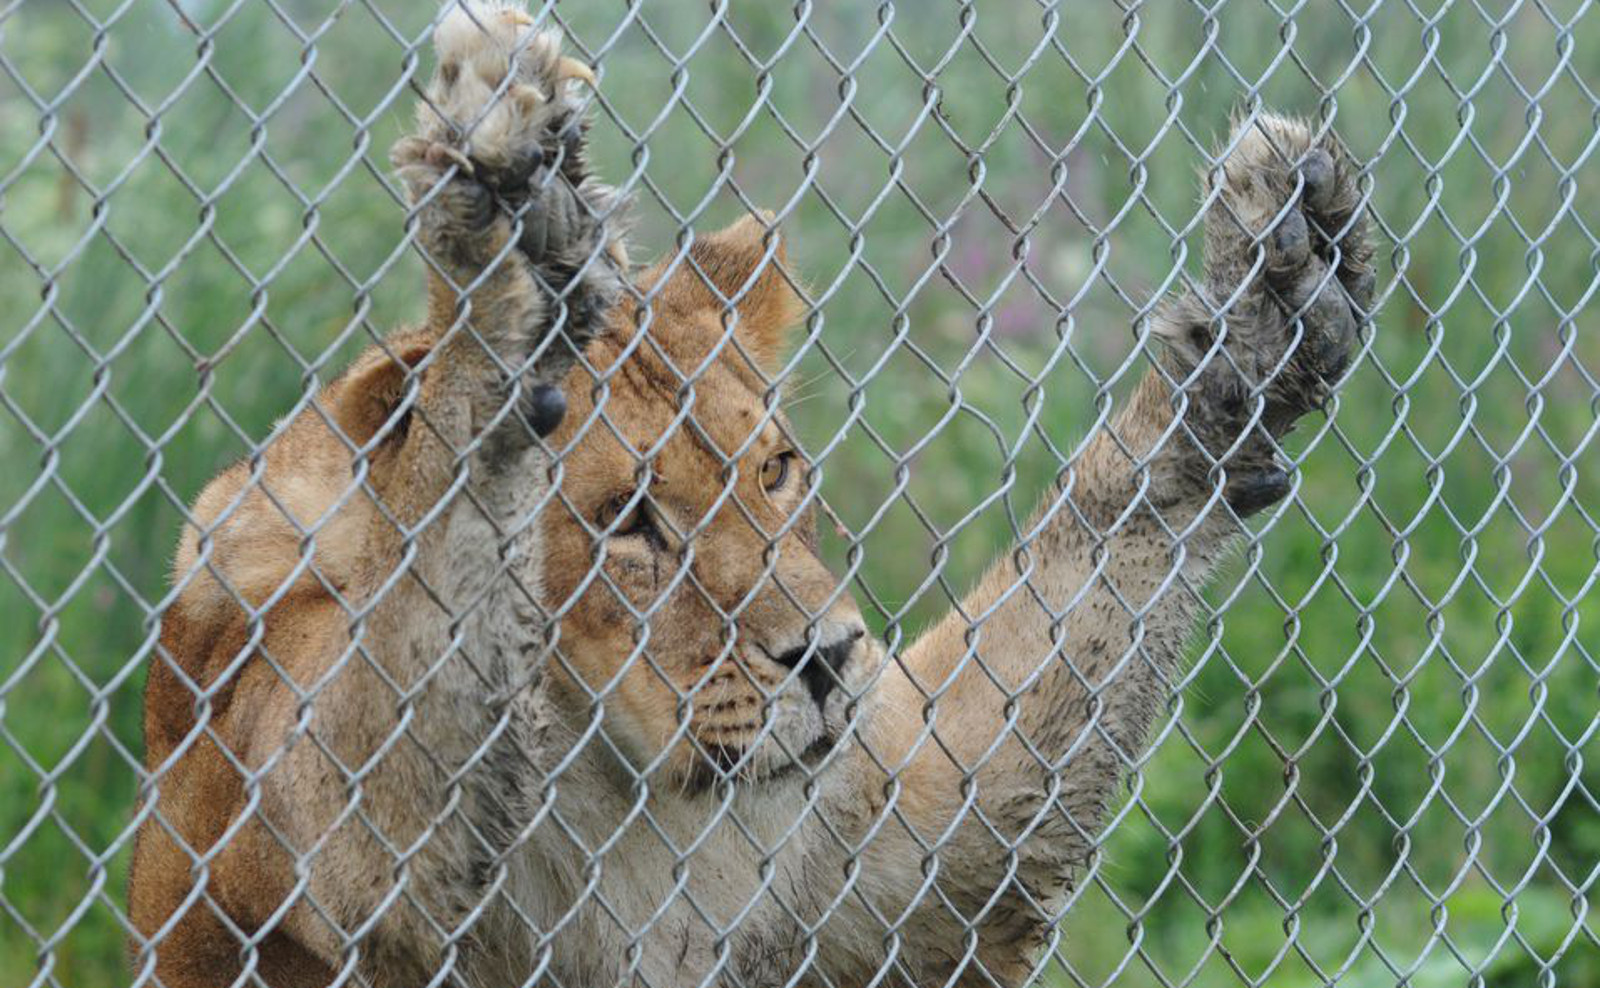 4 Amazing Rescues of Exotic Animals From Roadside Zoos That Give Us Hope This Cruel Practice Will End